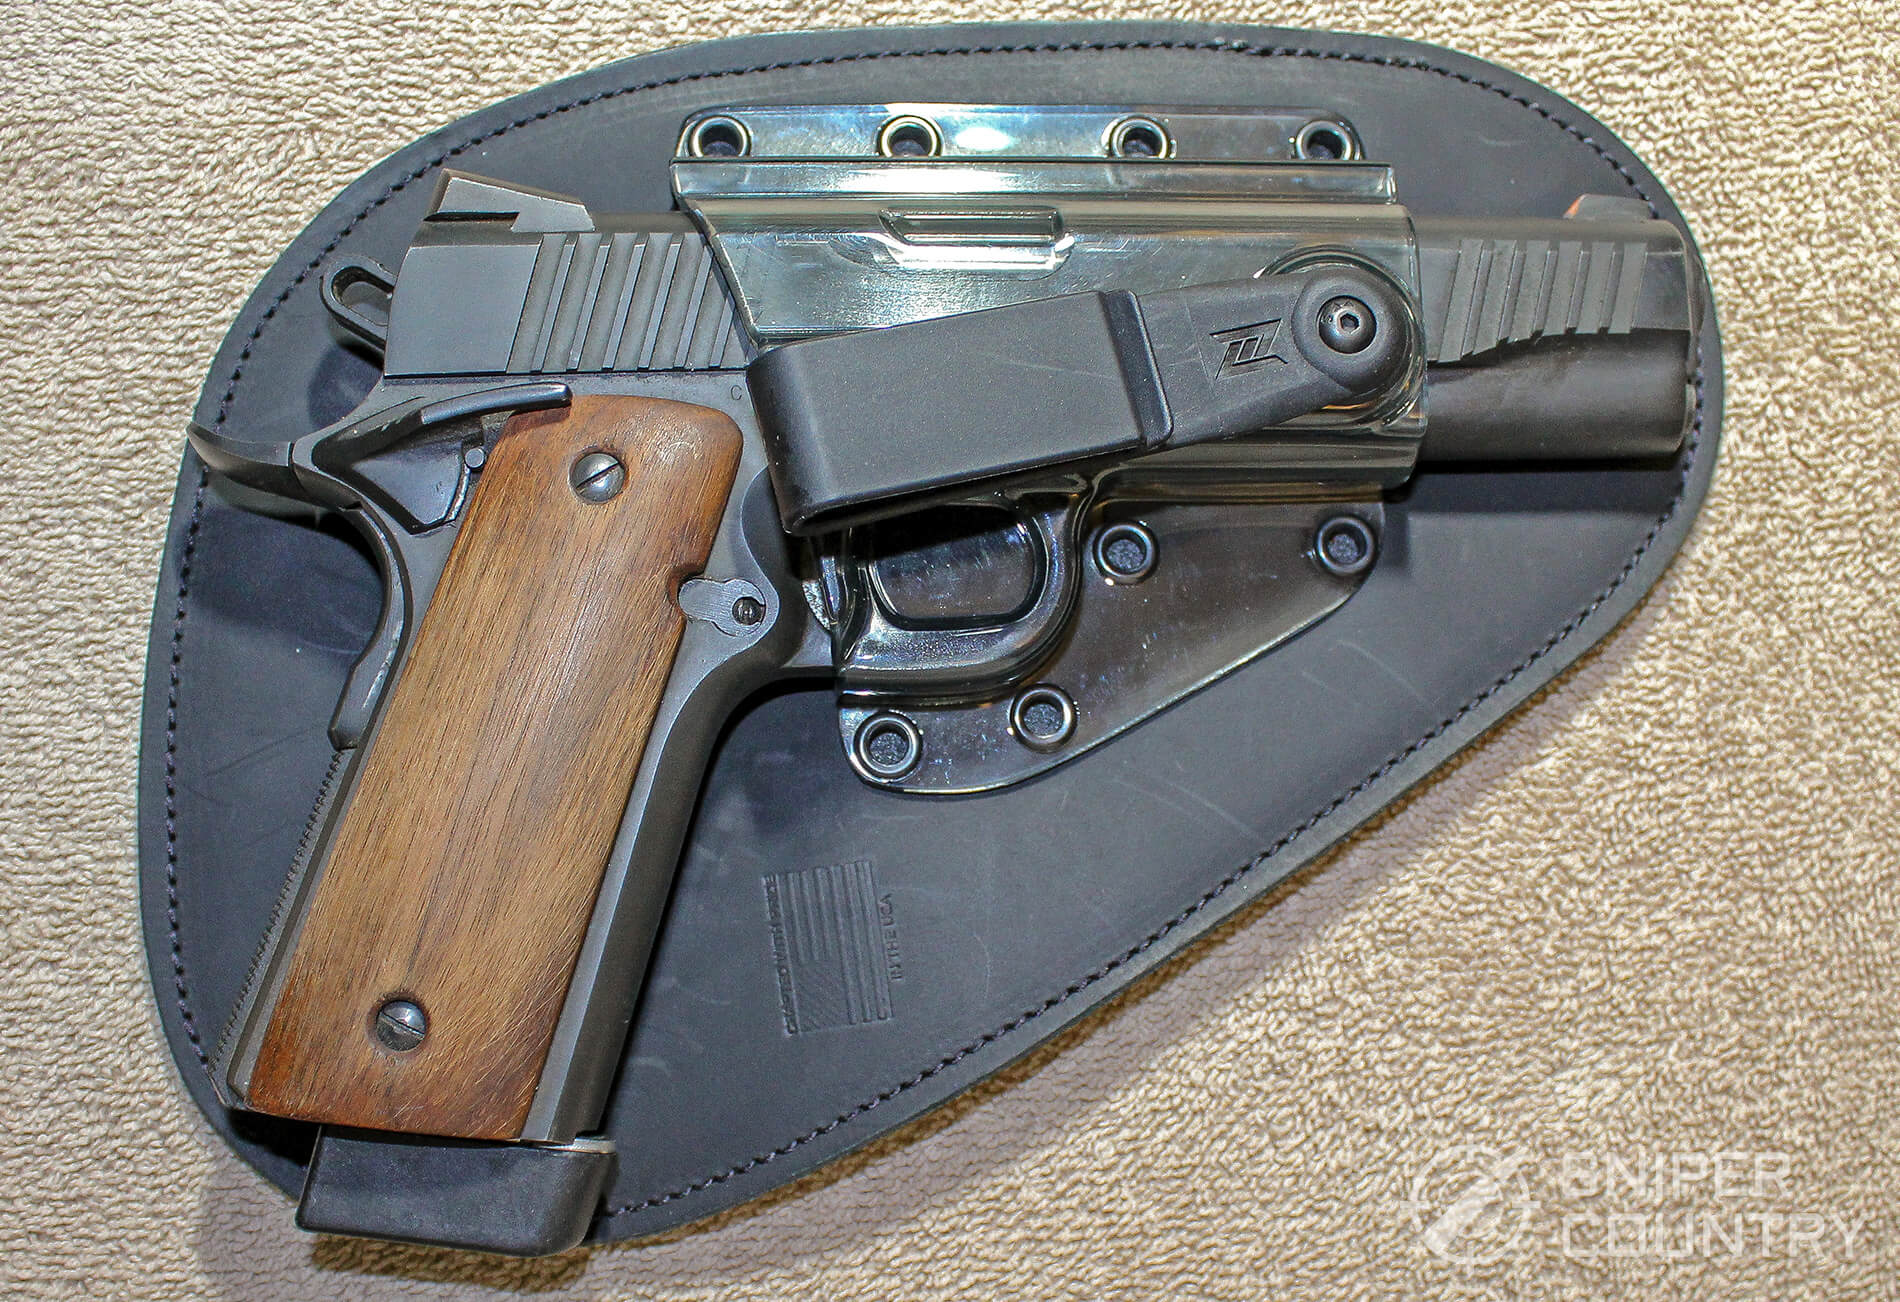 1911 in professional holster